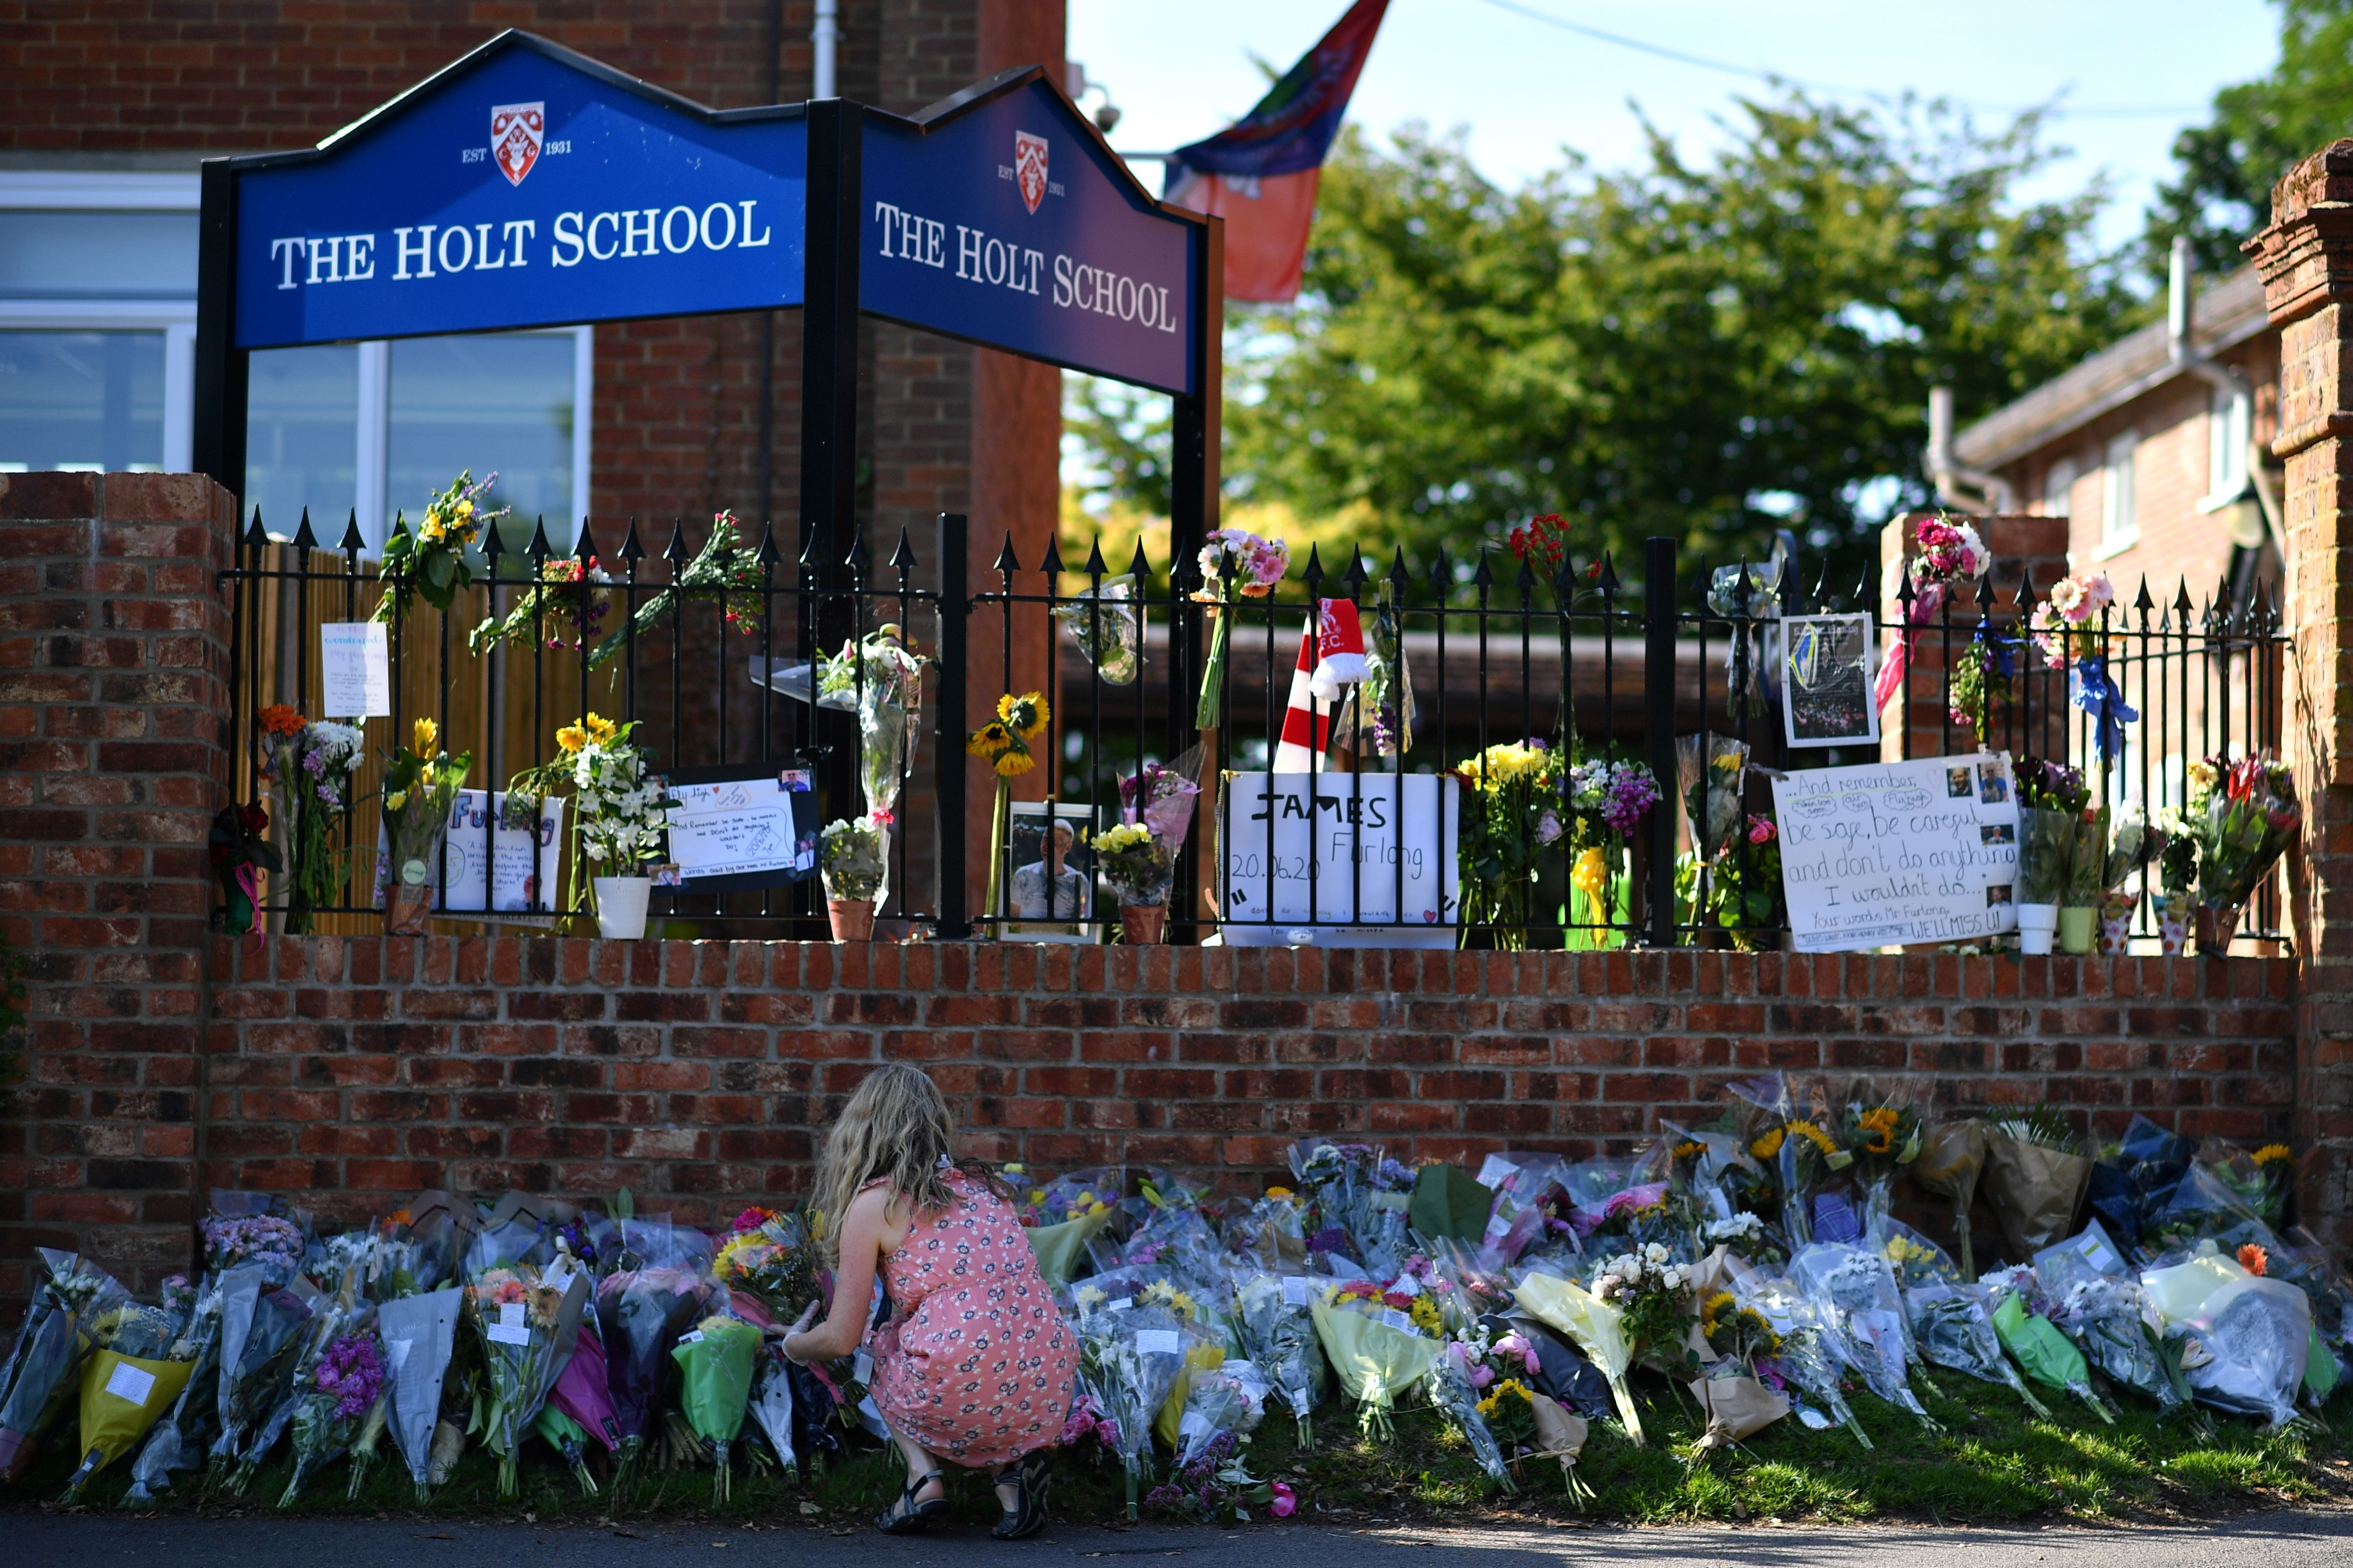 A teacher rearranges a floral tribute outside The Holt School in Wokingham on June 23, 2020 in memory of teacher James Furlong who was a victim in the knife attack in Reading which killed three people. (Photo by BEN STANSALL/AFP via Getty Images)